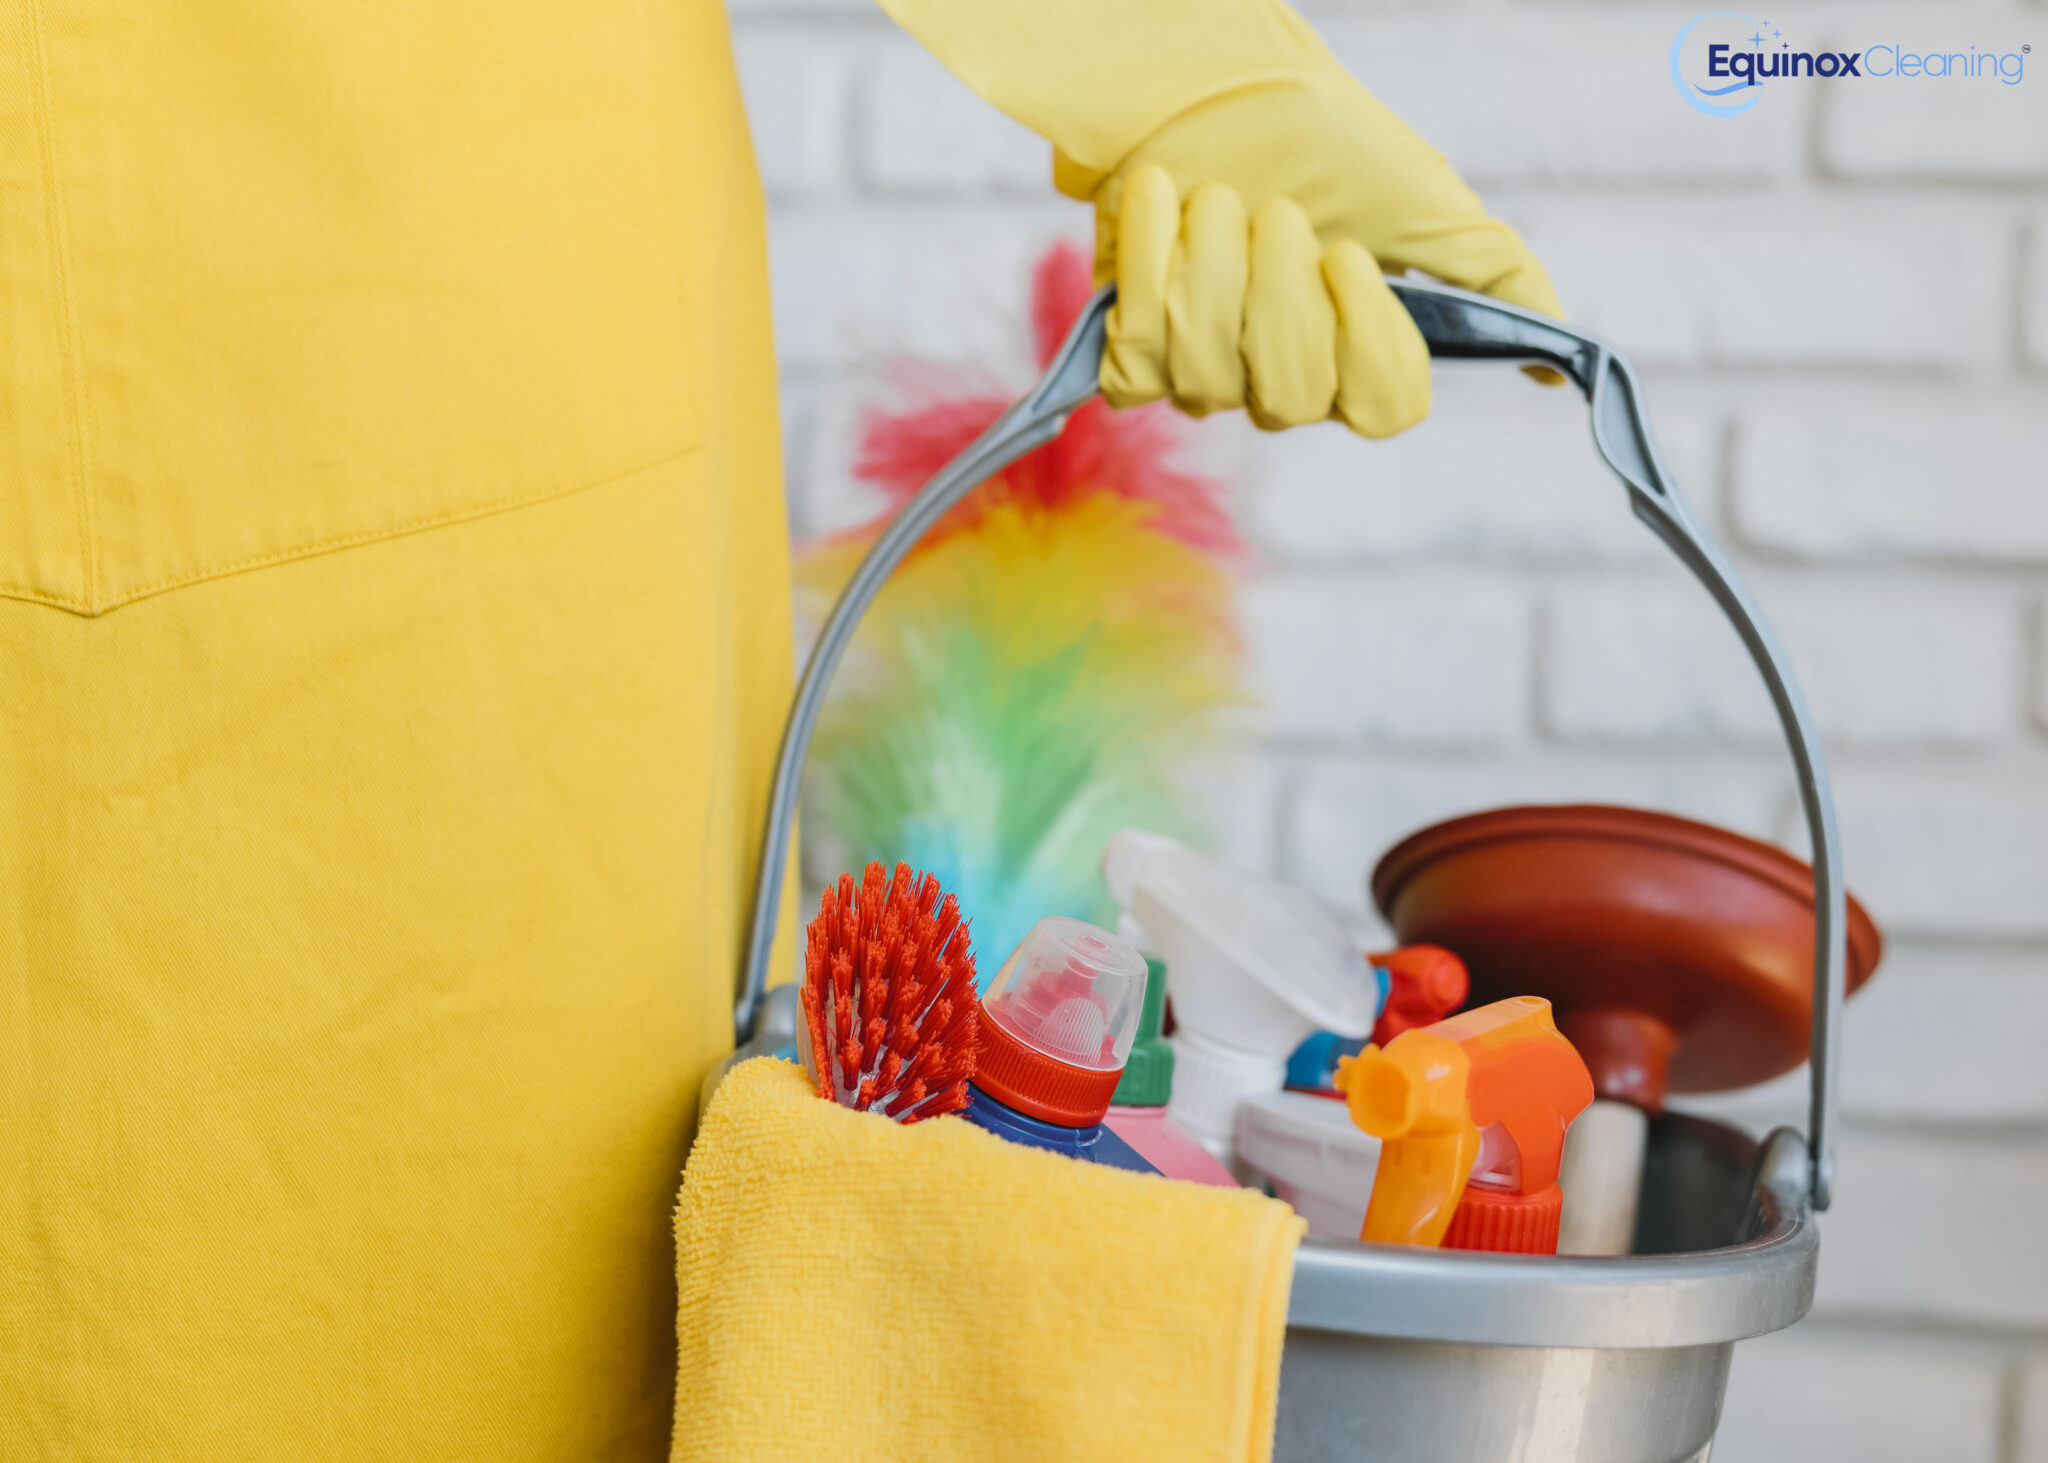 Last minute cleaning services - Equinox cleaning